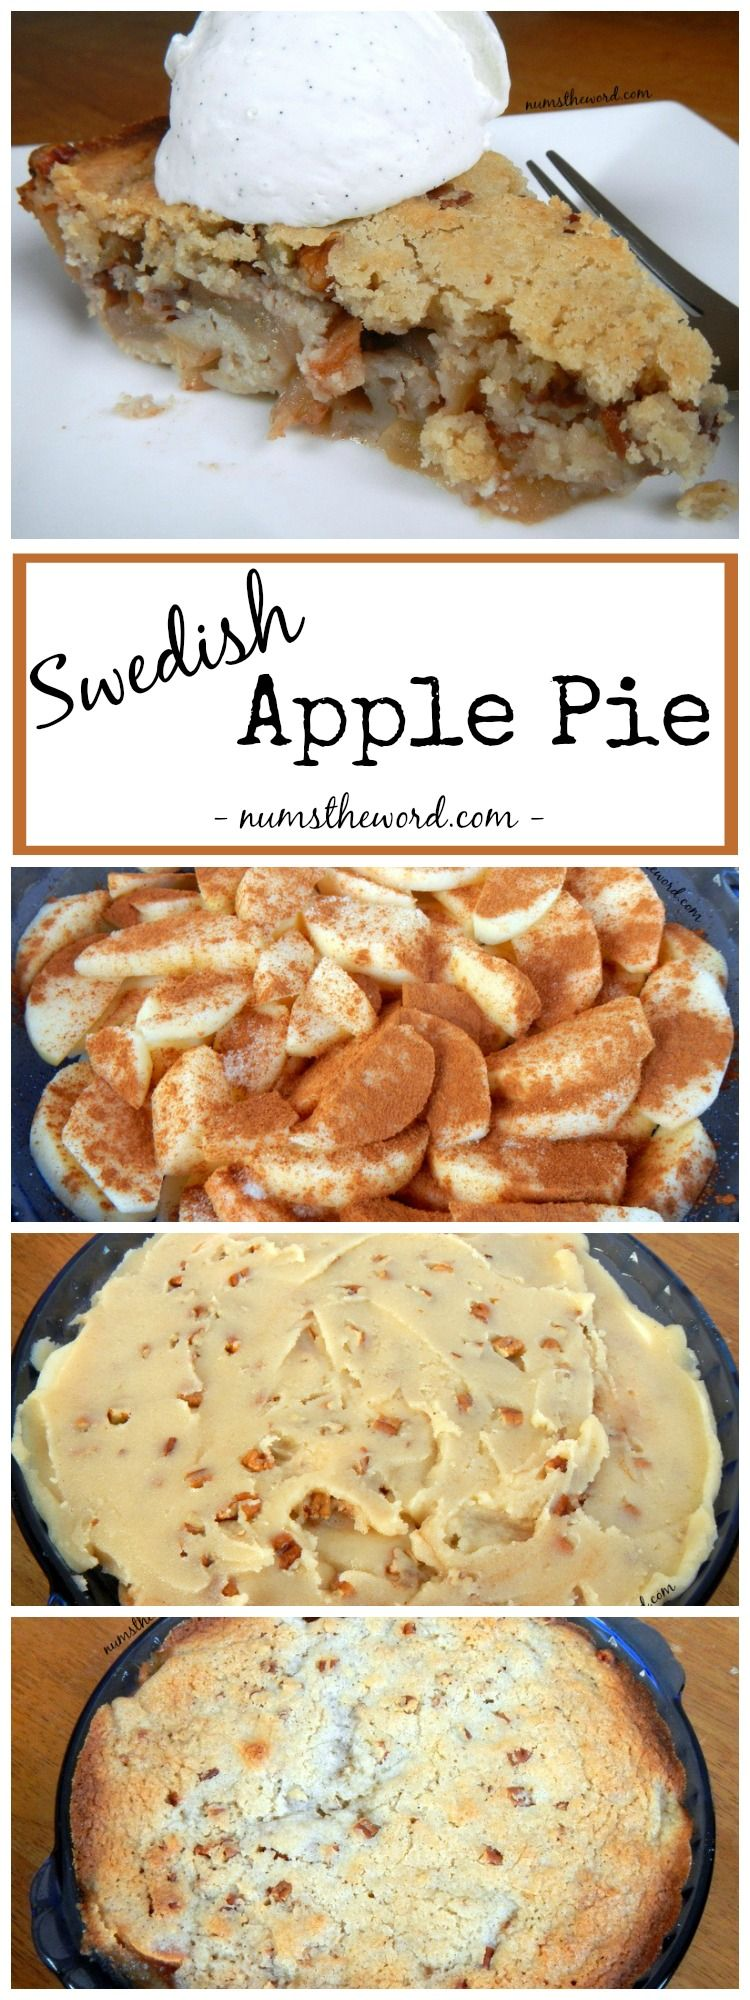 Swedish Apple Pie If You Re Looking For A New Twist On A Classic Try This Crust Less Swedish Apple Pie A Swedish Apple Pie Swedish Recipes Diy Food Recipes